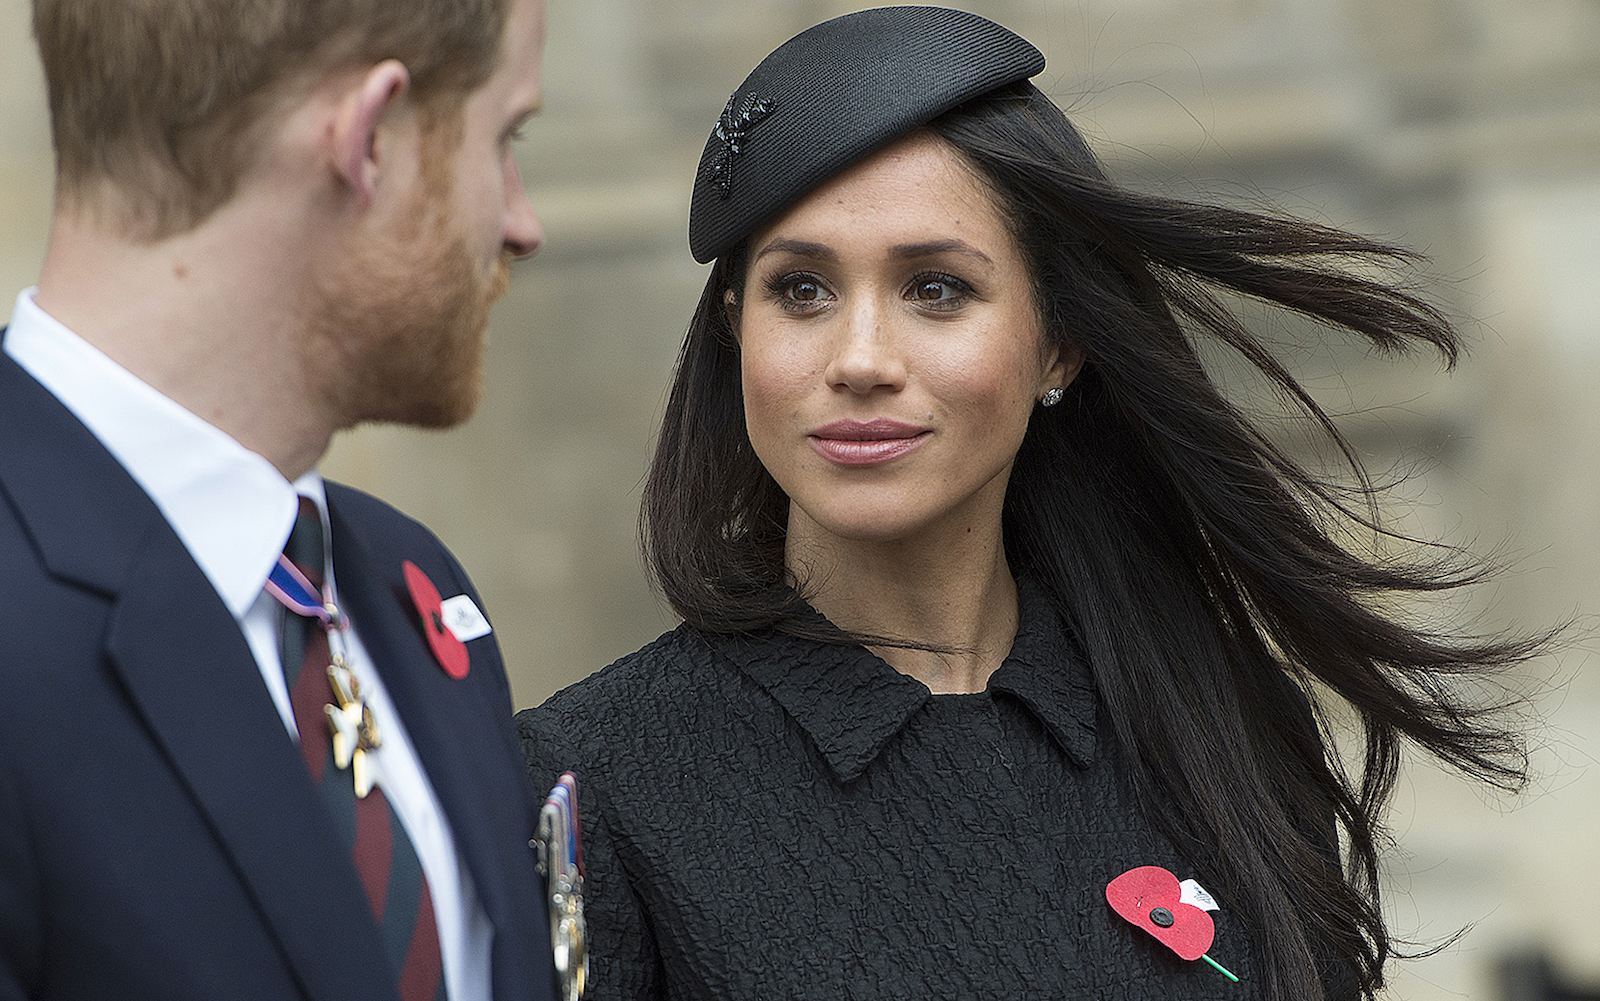 Meghan Markle Will Walk Down the Aisle Alone — and Then Be Joined by a Special Member of the Royal Family